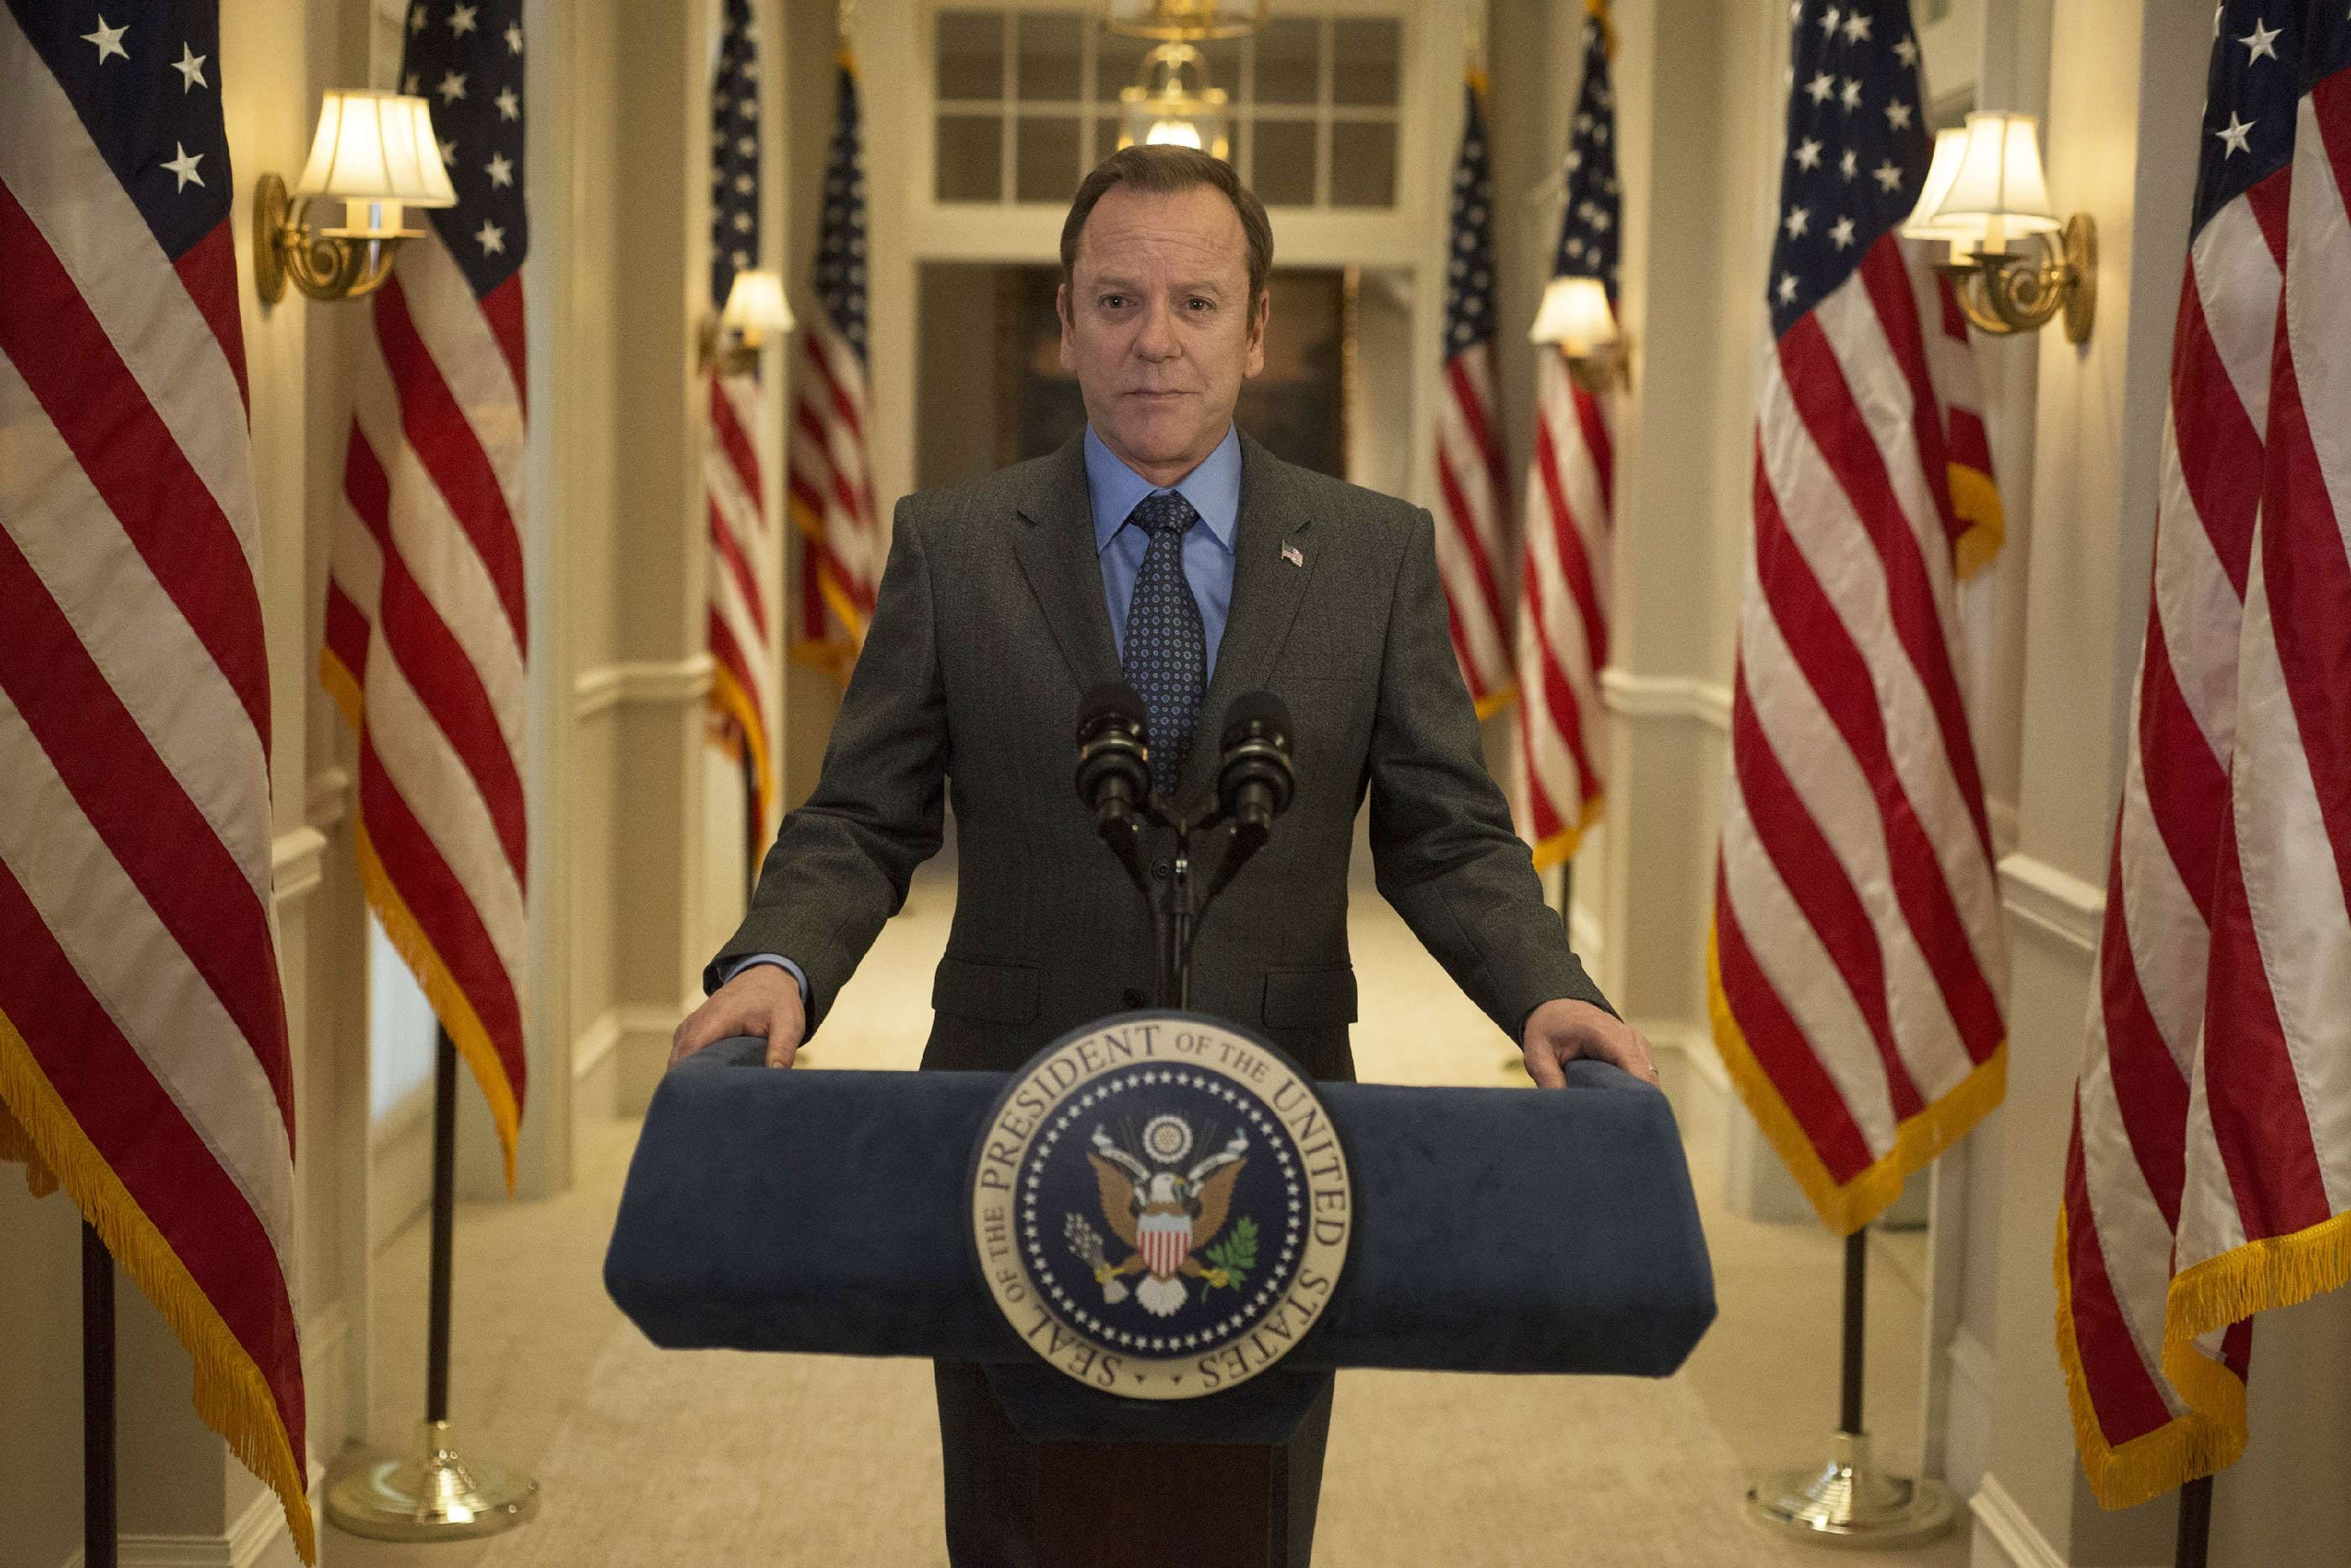 Designated Survivor season 3 - Cast, renewal, release date